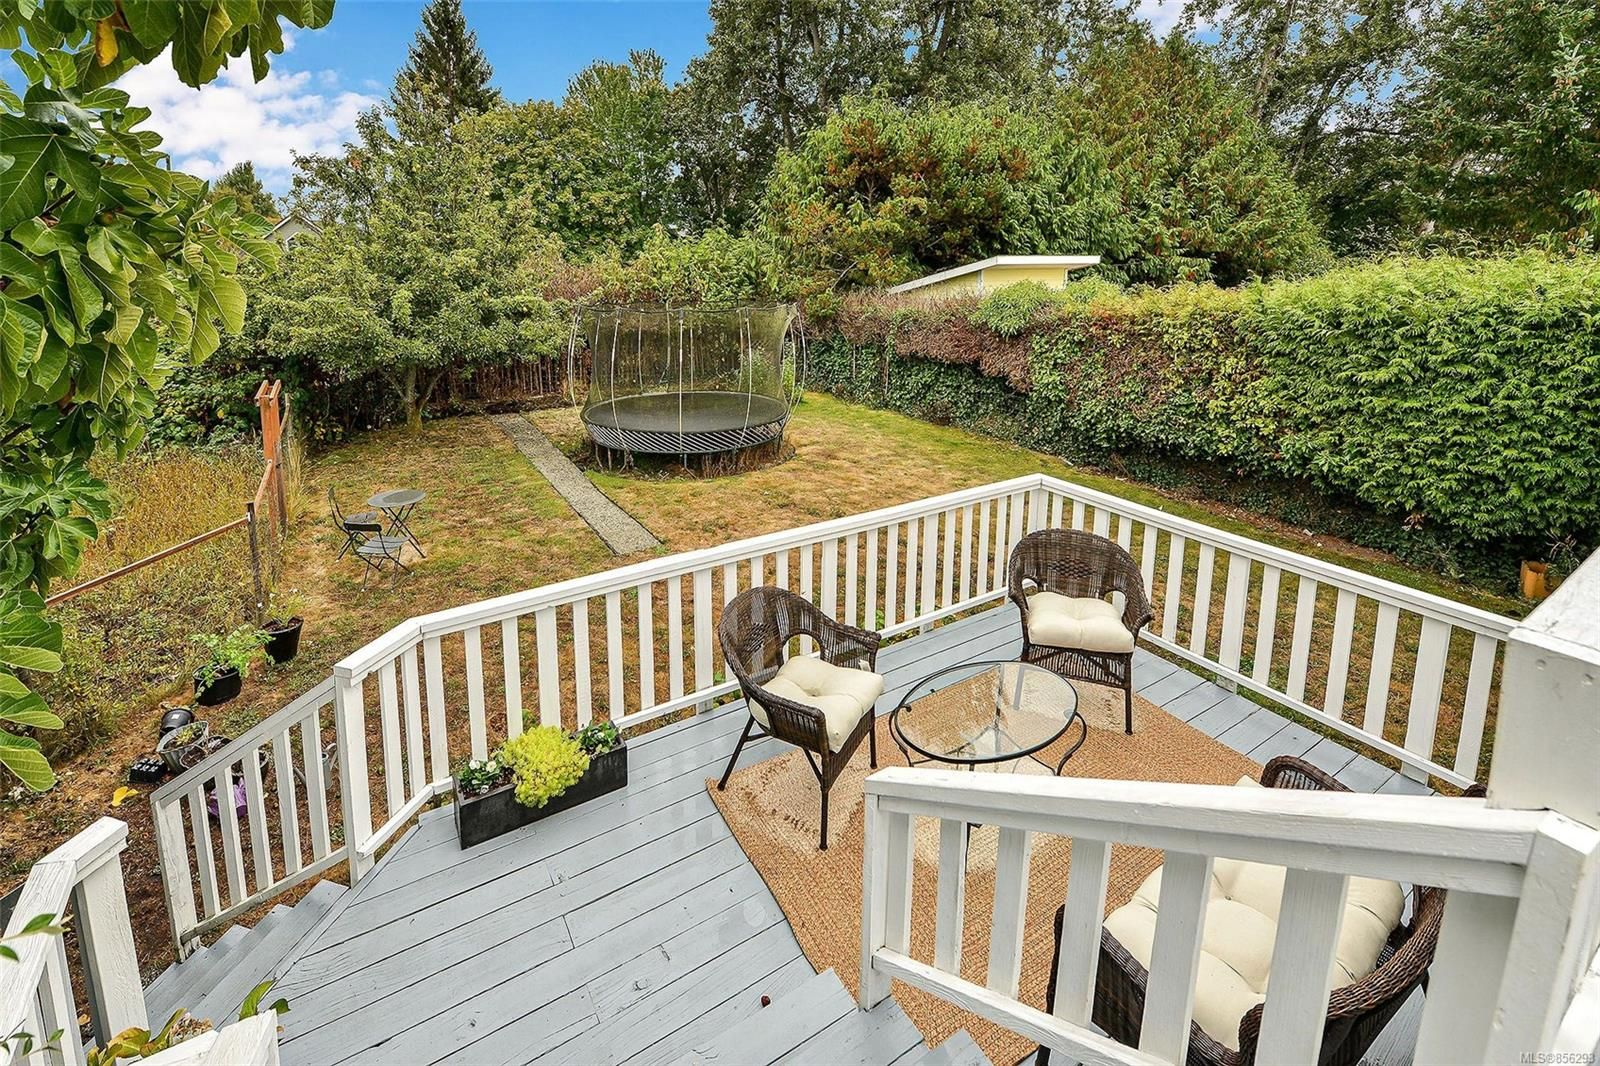 Photo 32: Photos: 1753 Armstrong Ave in : OB North Oak Bay House for sale (Oak Bay)  : MLS®# 856293